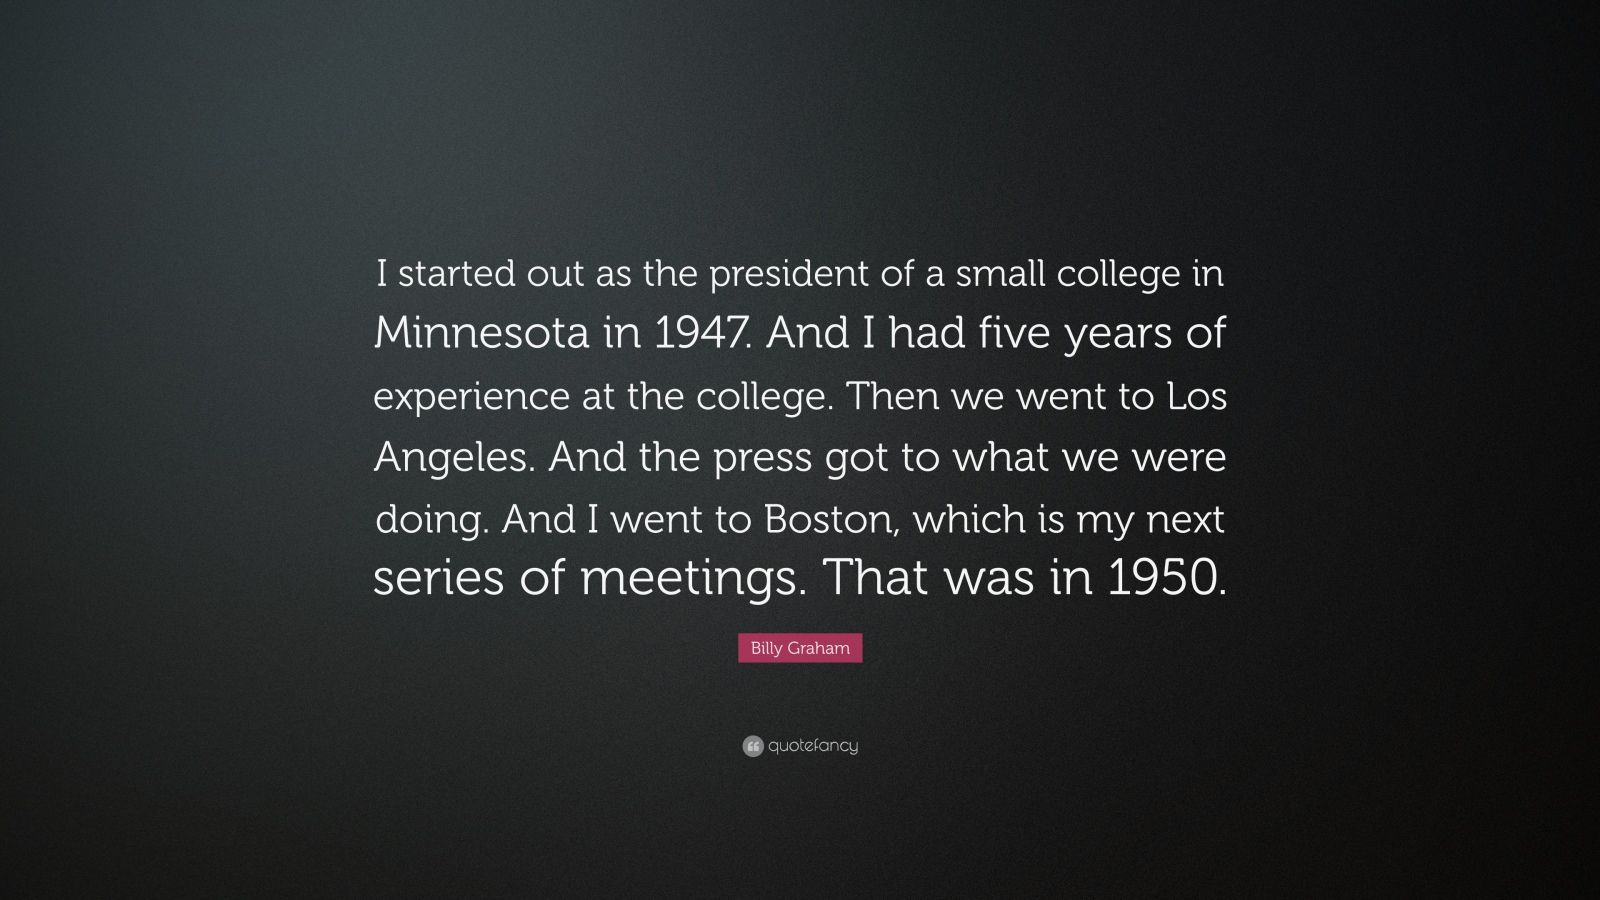 """Billy Graham Quote: """"I started out as the president of a small college in Minnesota in 1947. And I had five years of experience at the college. Then we went to Los Angeles. And the press got to what we were doing. And I went to Boston, which is my next series of meetings. That was in 1950."""""""